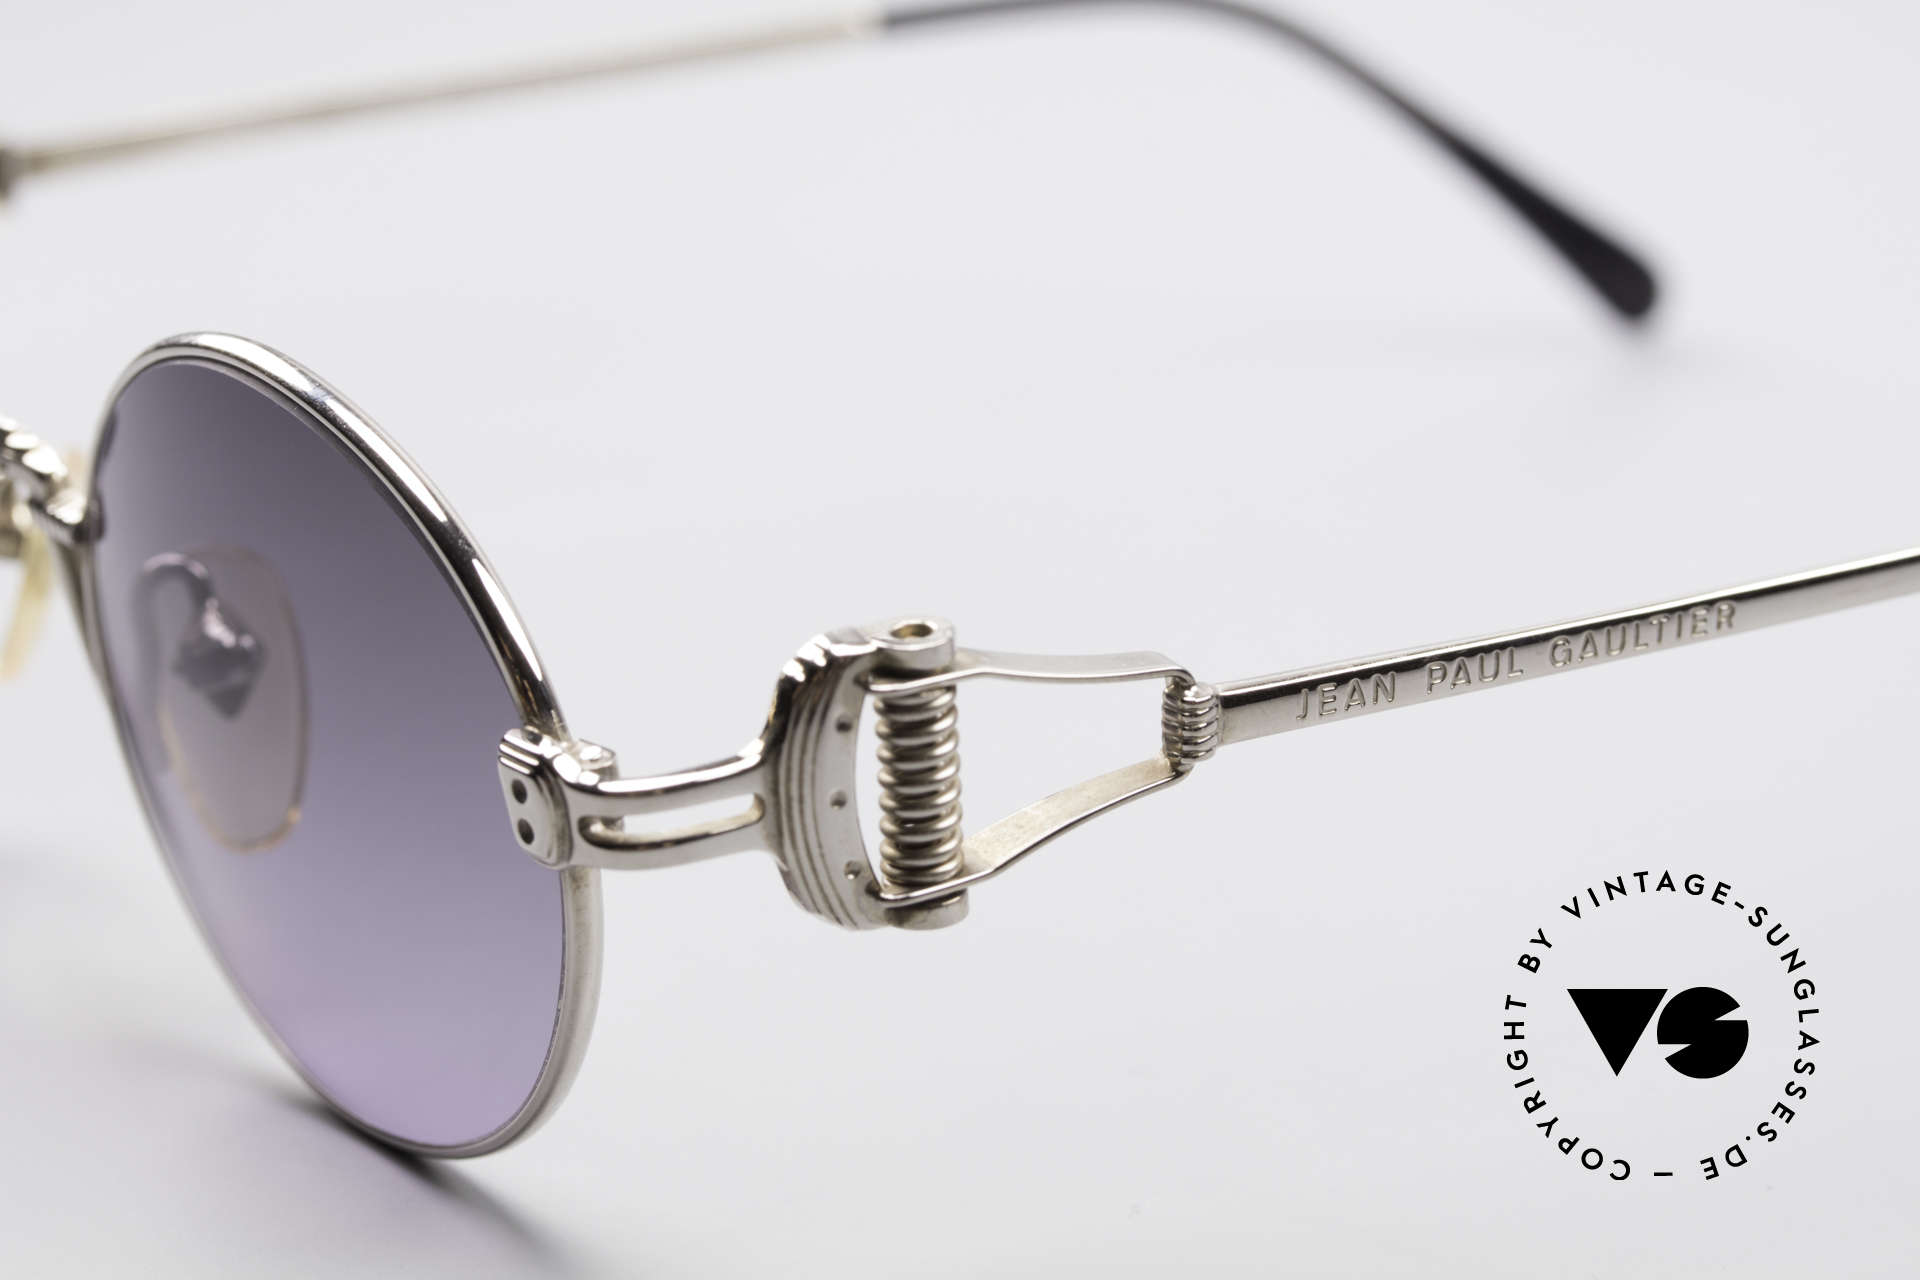 Jean Paul Gaultier 55-5106 Steampunk Sunglasses, unworn (like all our rare old 1990's designer sunglasses), Made for Men and Women